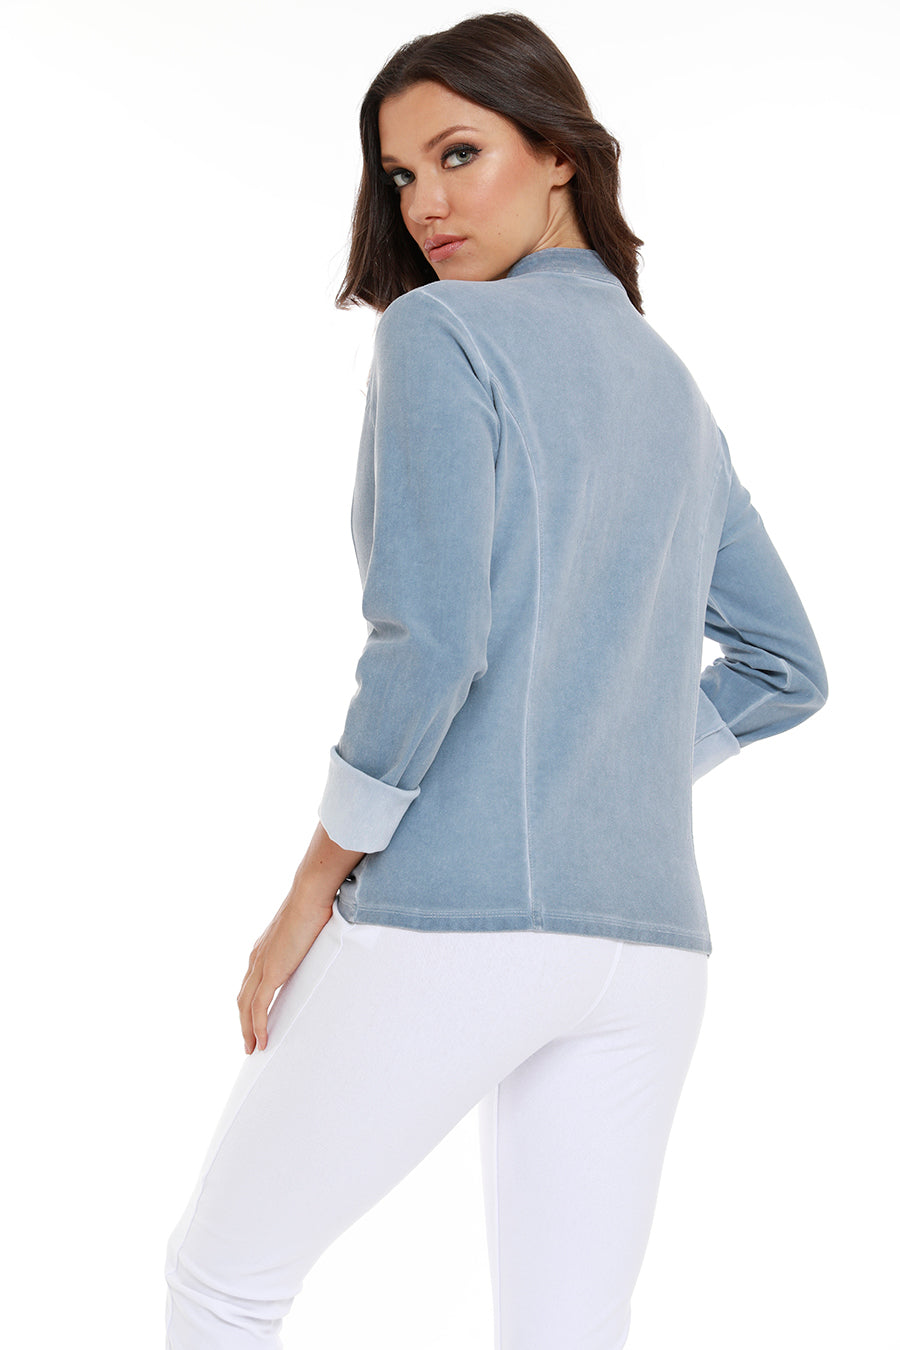 Mikayla Short Zip Up Jacket